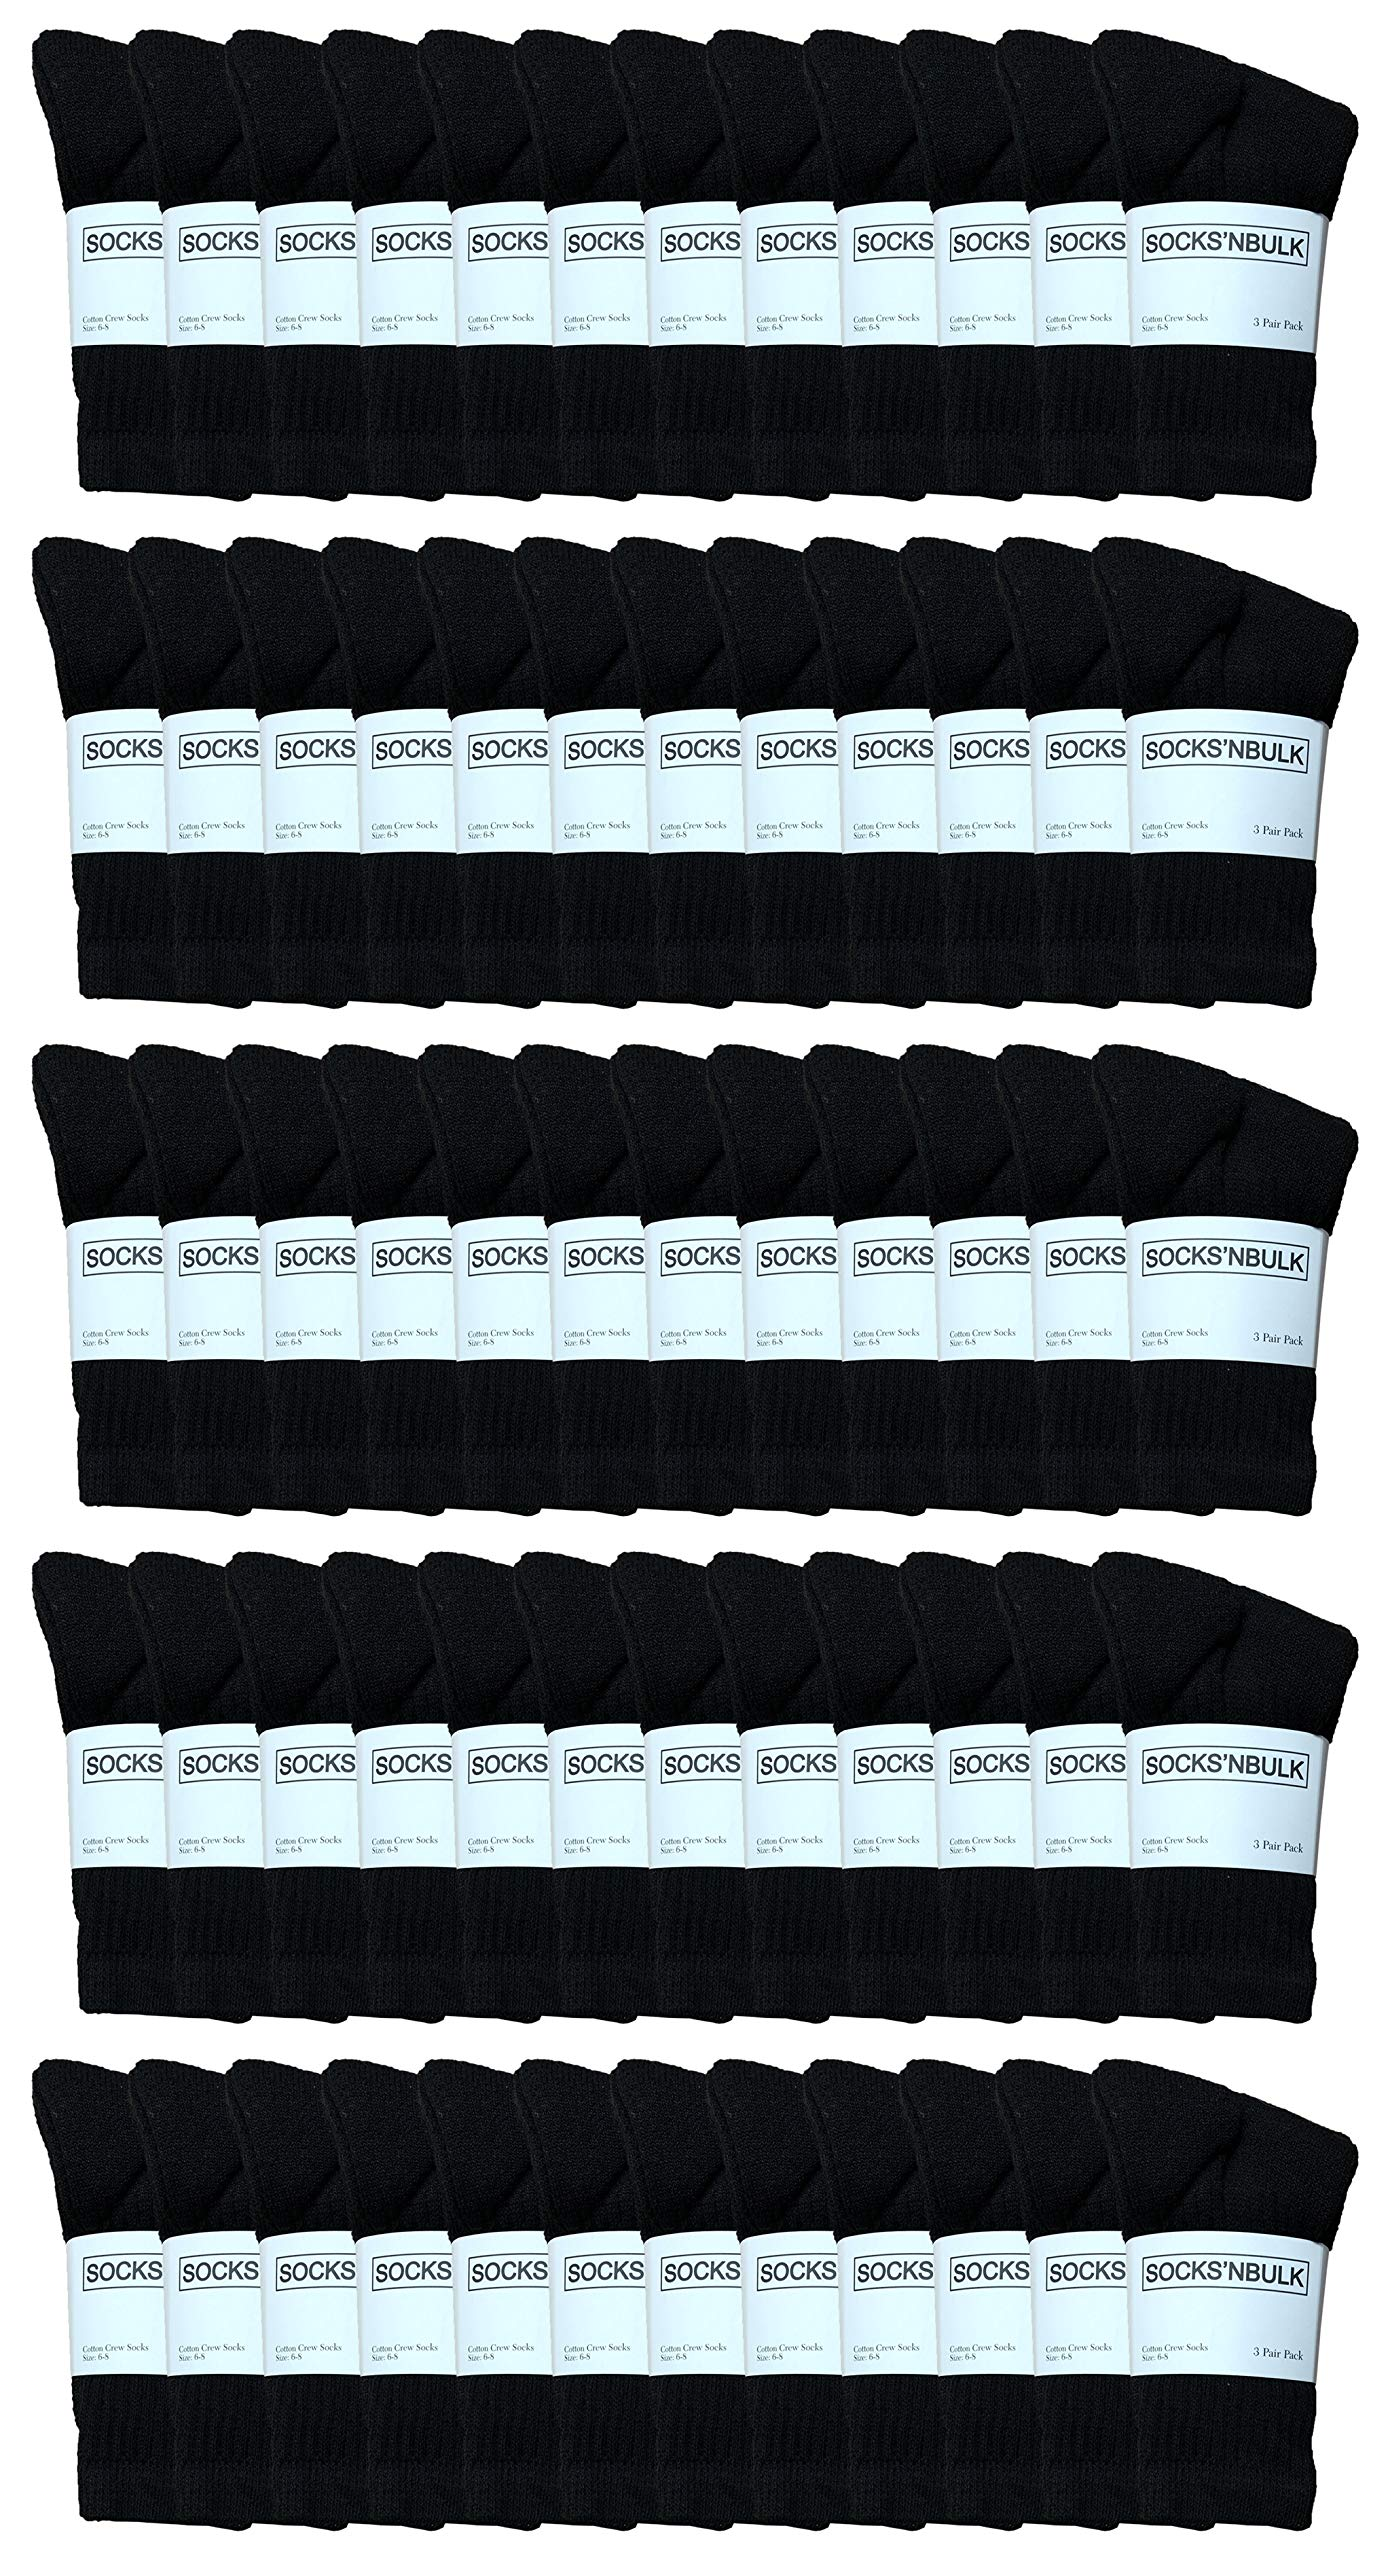 180 Pairs Case of Kids Sports Crew Socks, Wholesale Bulk Pack Sock for boys and girls, by WSD (Black, 6-8)